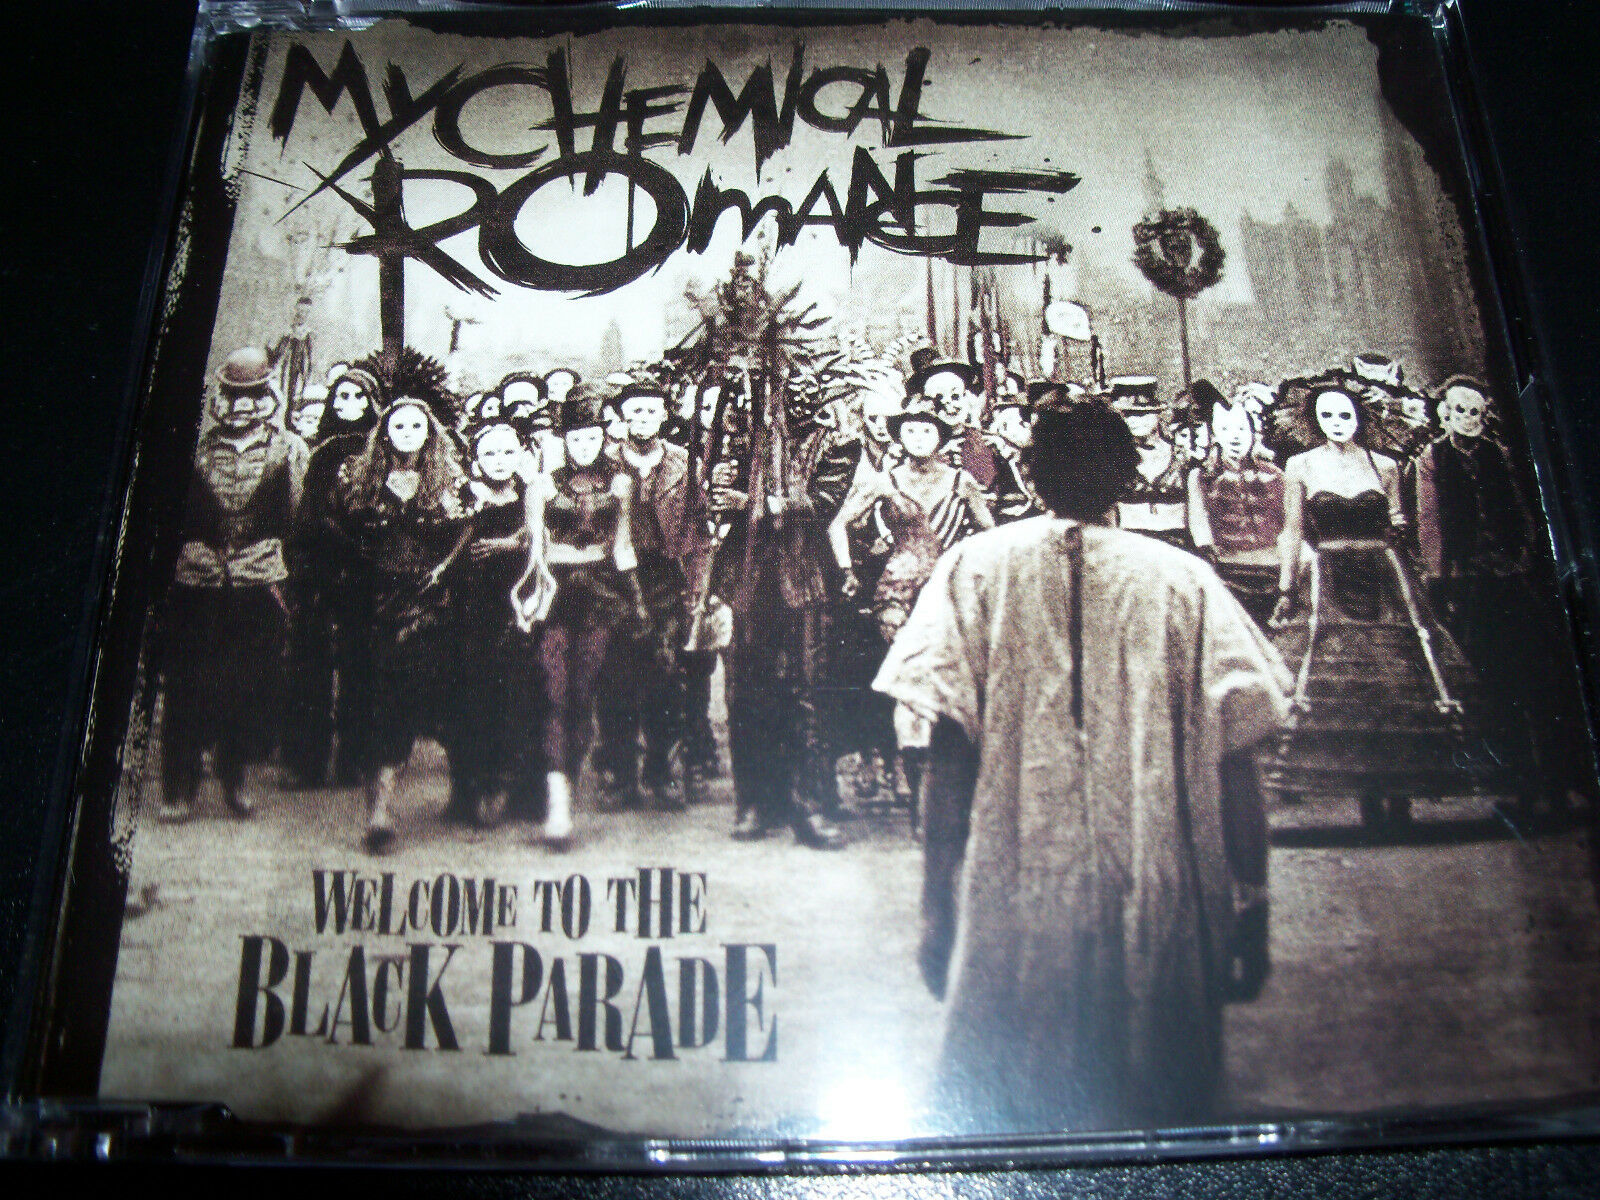 black singles in welcome The black parade follows the death of the patient, a character suffering from a terminal illness it chronicles him as he ventures out of life and death meets him as the black parade the story is inspired by gerard's belief that you are met, upon death, by a prominent memory from your life in the album, the patient is met by the memory of a.